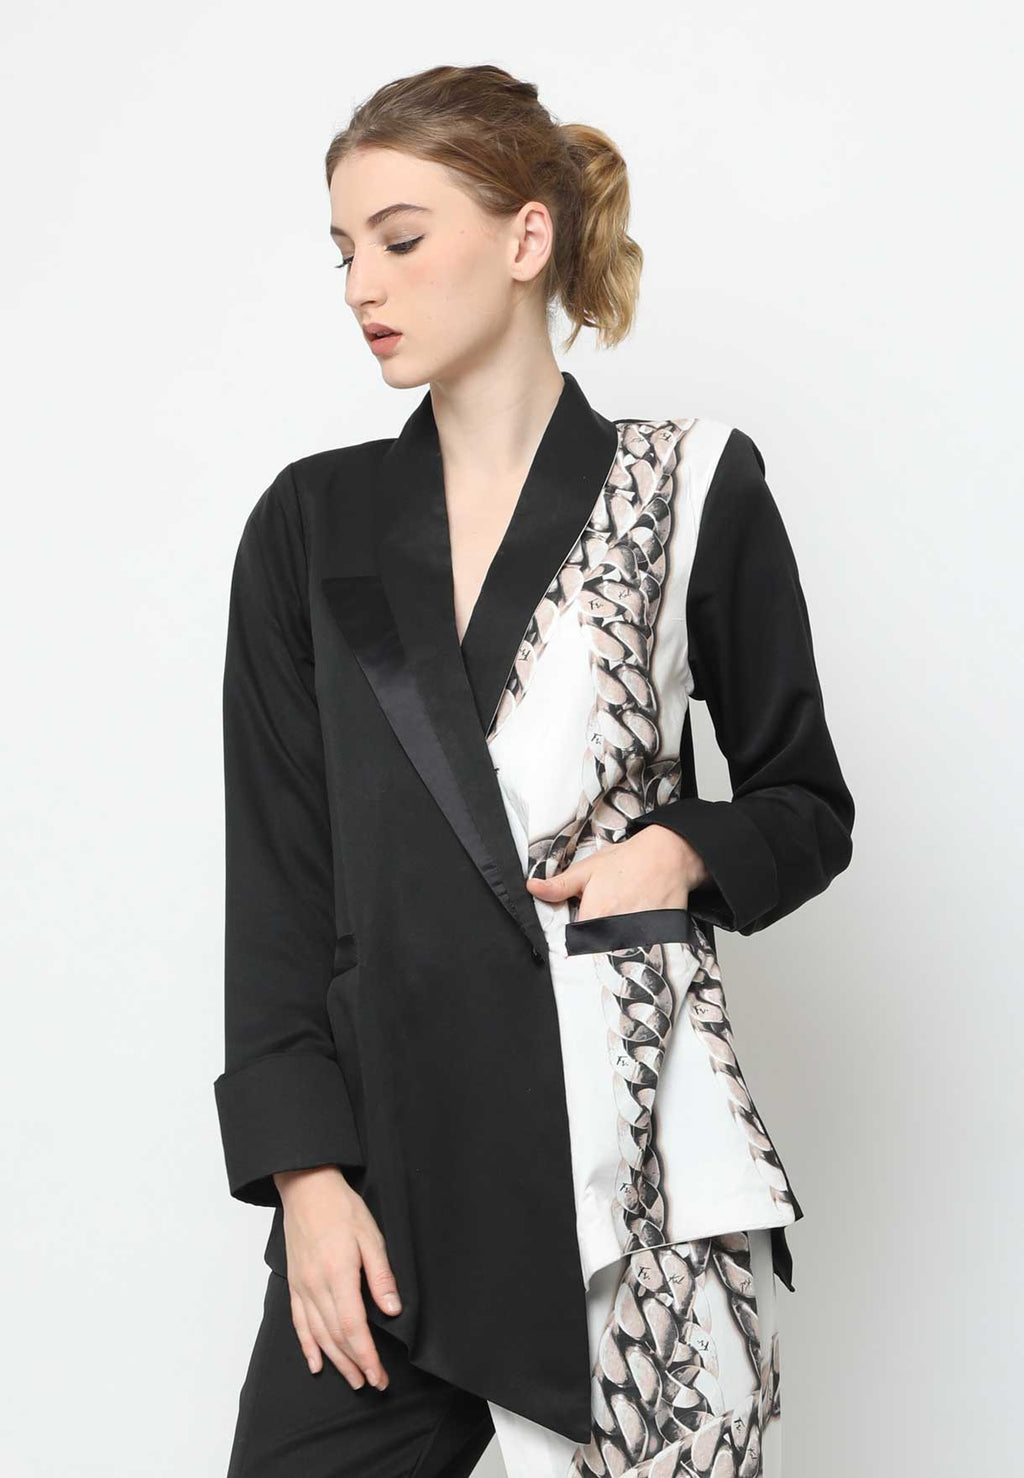 Jacque. Backless Blazer - Black Chain